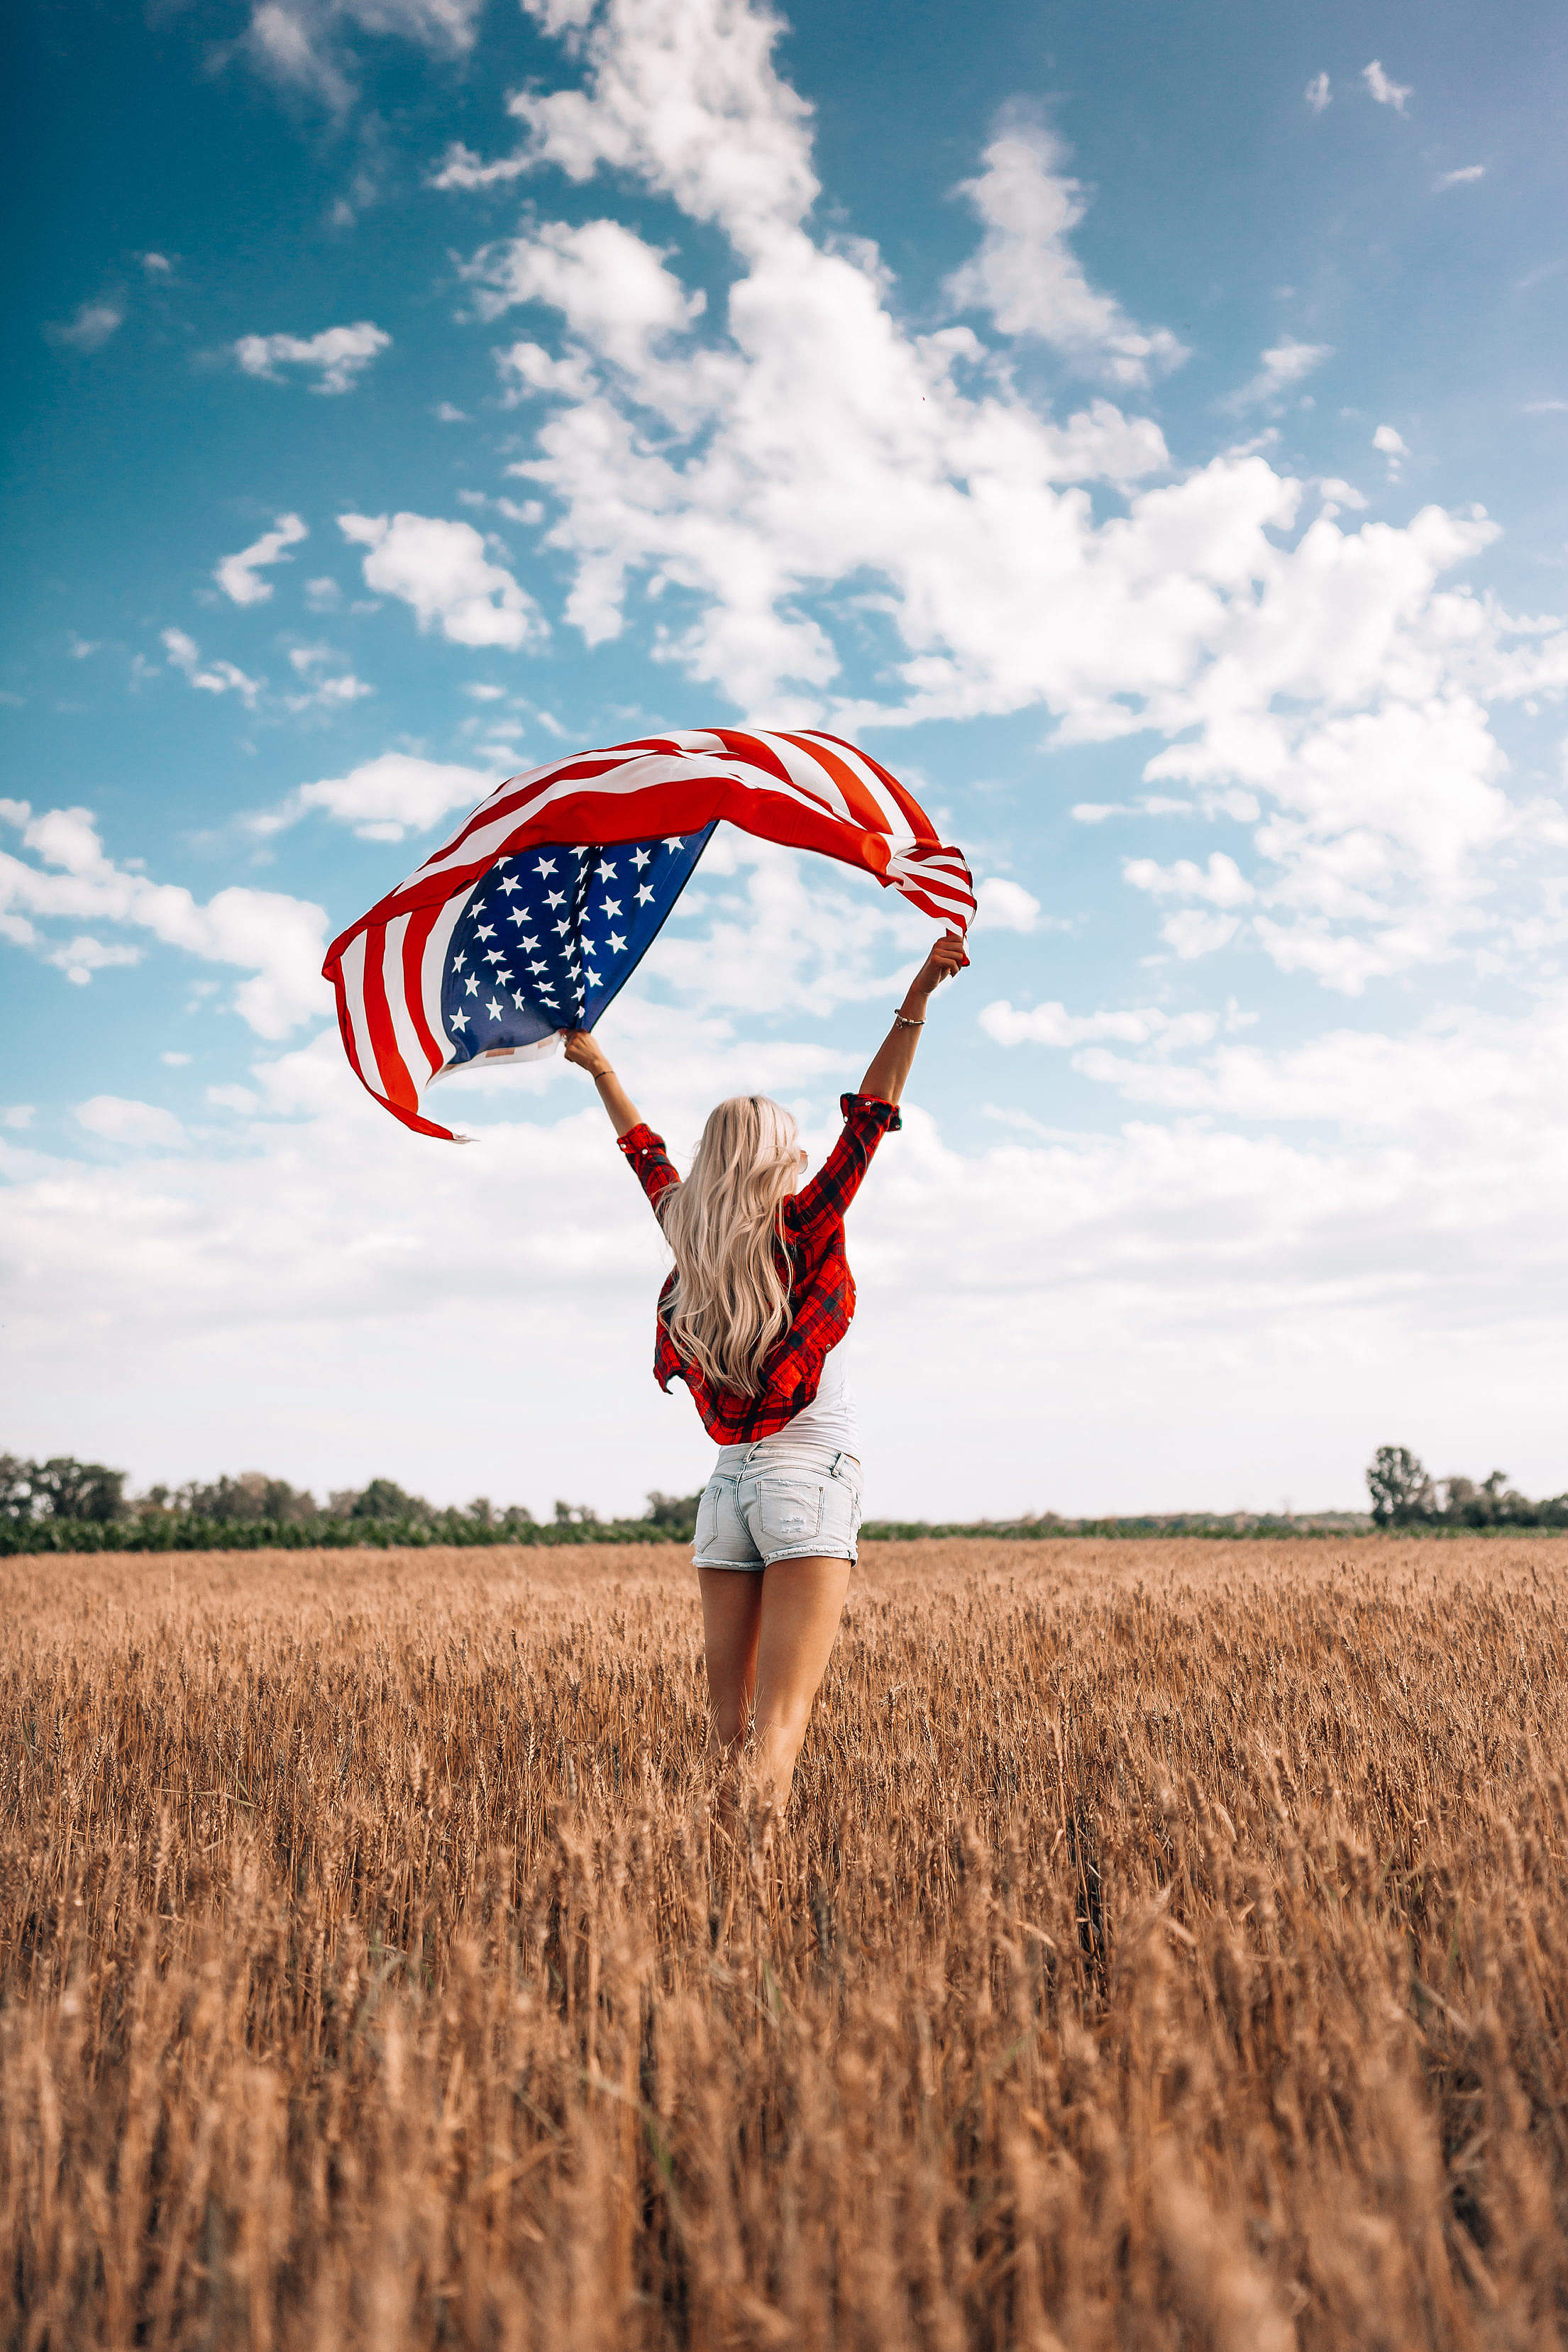 Woman Holding an American Flag in a Field Free Stock Photo